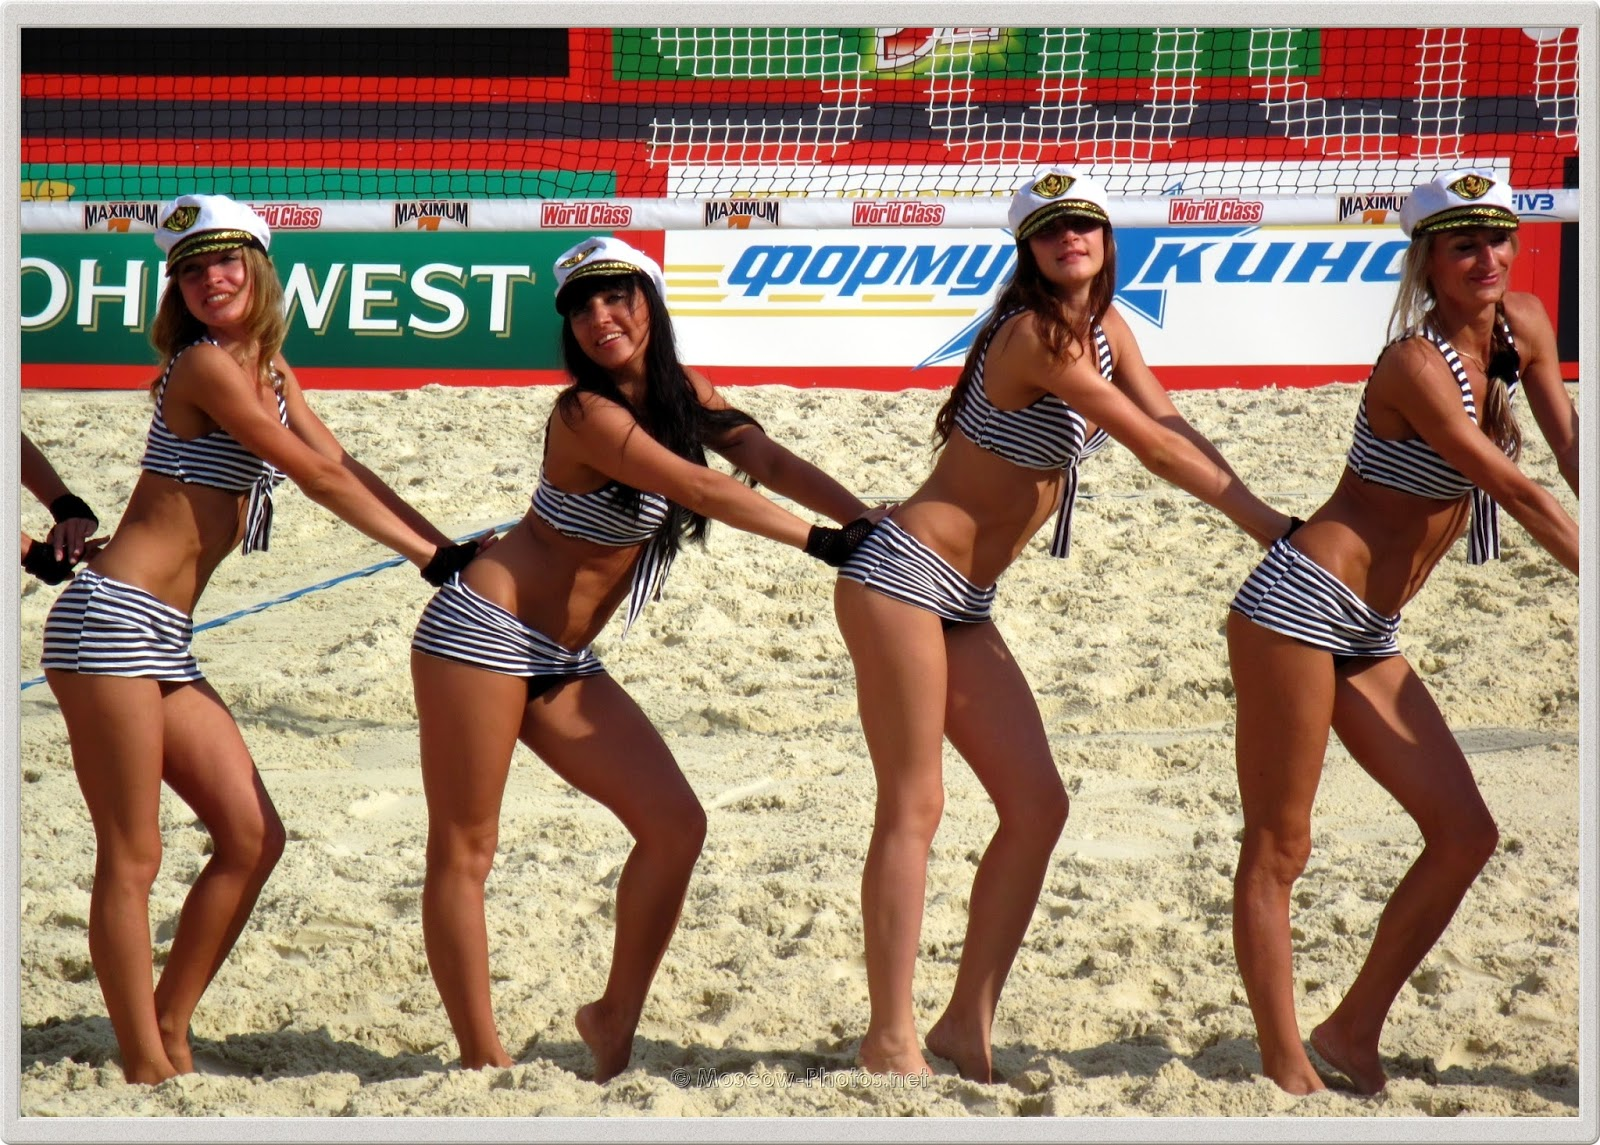 Beach Volleyball Girls in Sailors Suits